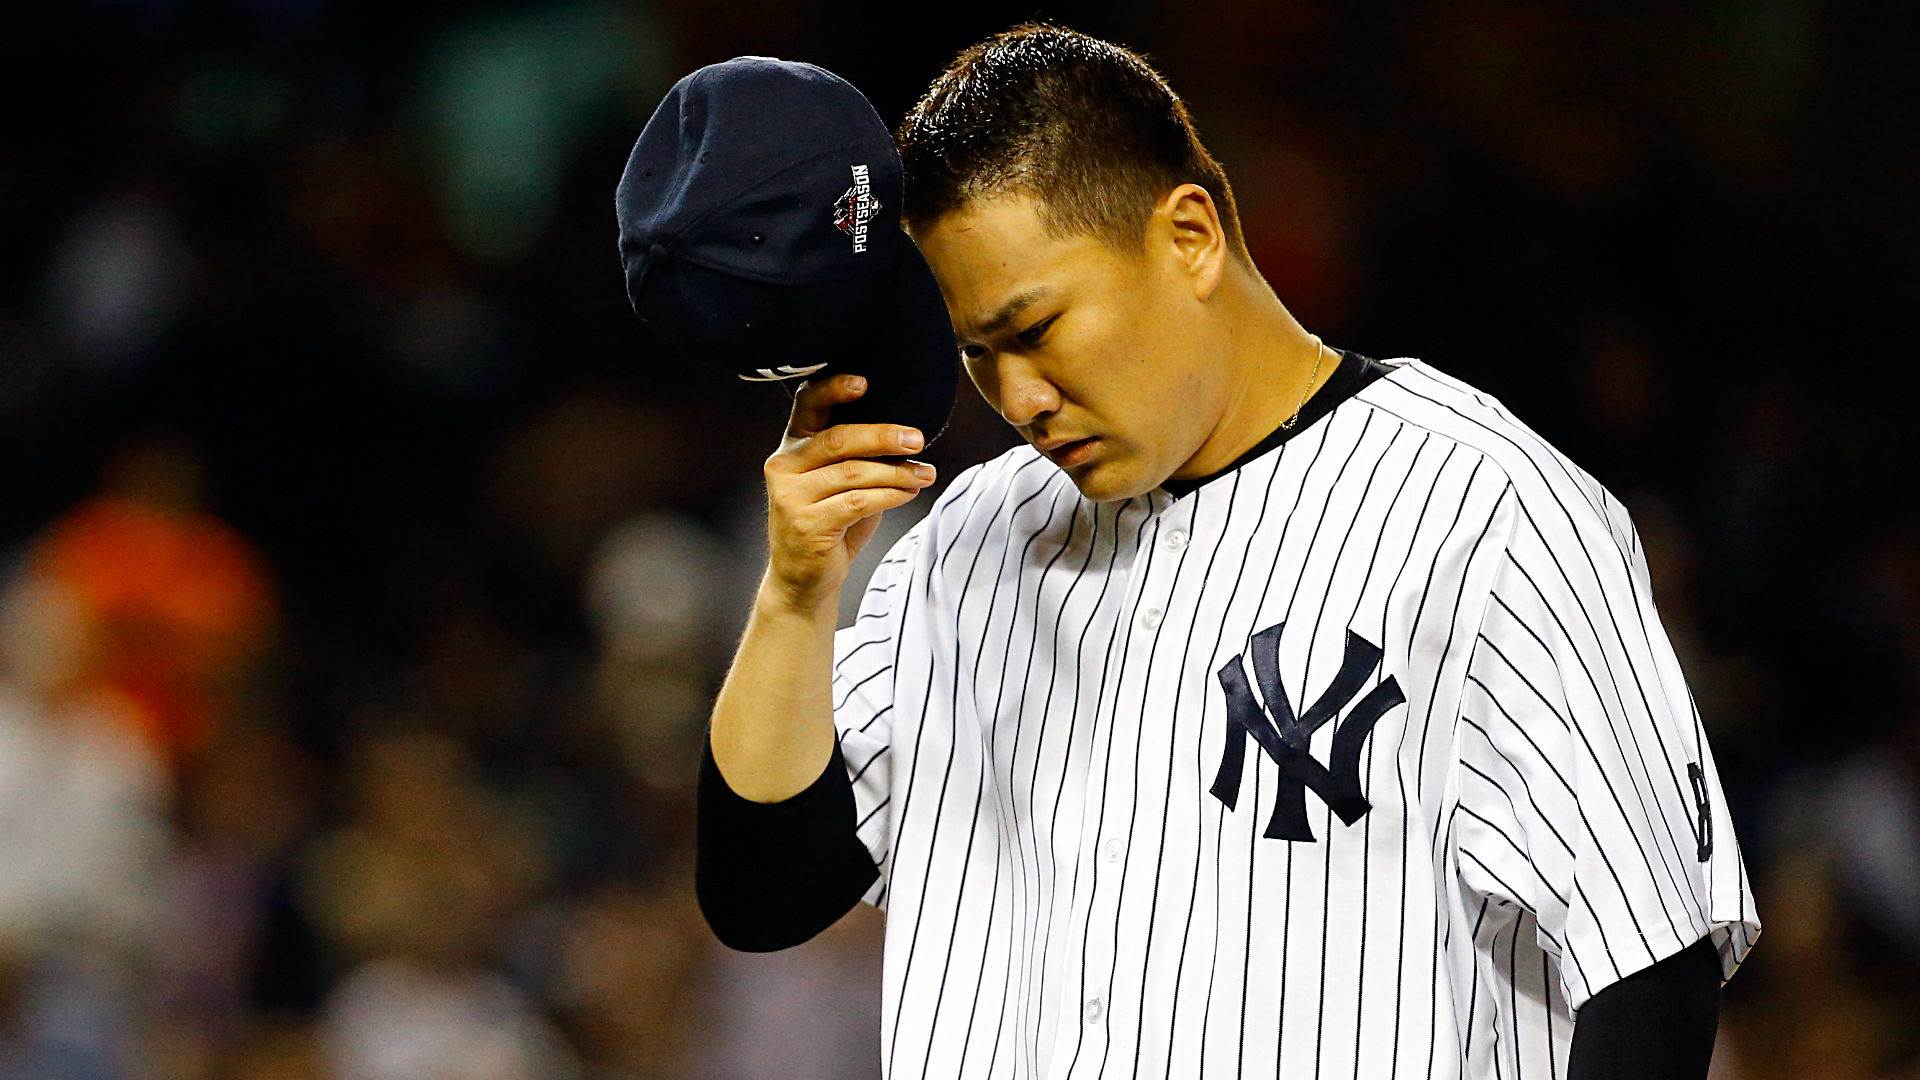 Yankees place Masahiro Tanaka on the 10-day DL with shoulder inflammation